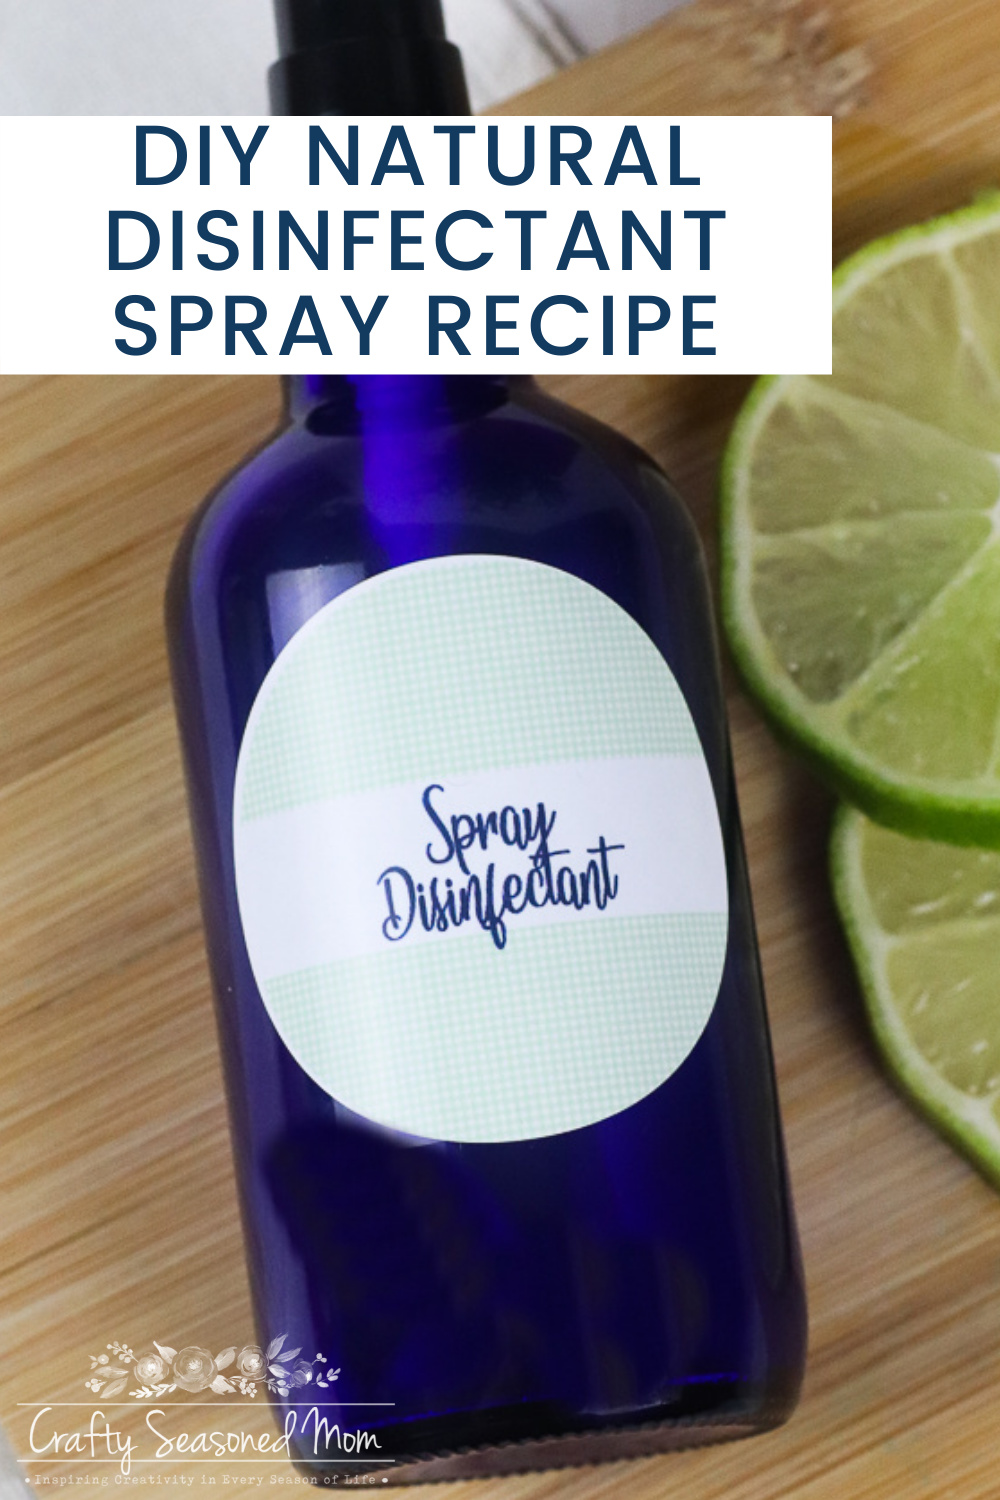 blue spray bottle next to sliced limes for DIY Natural Disinfectant Spray Recipe